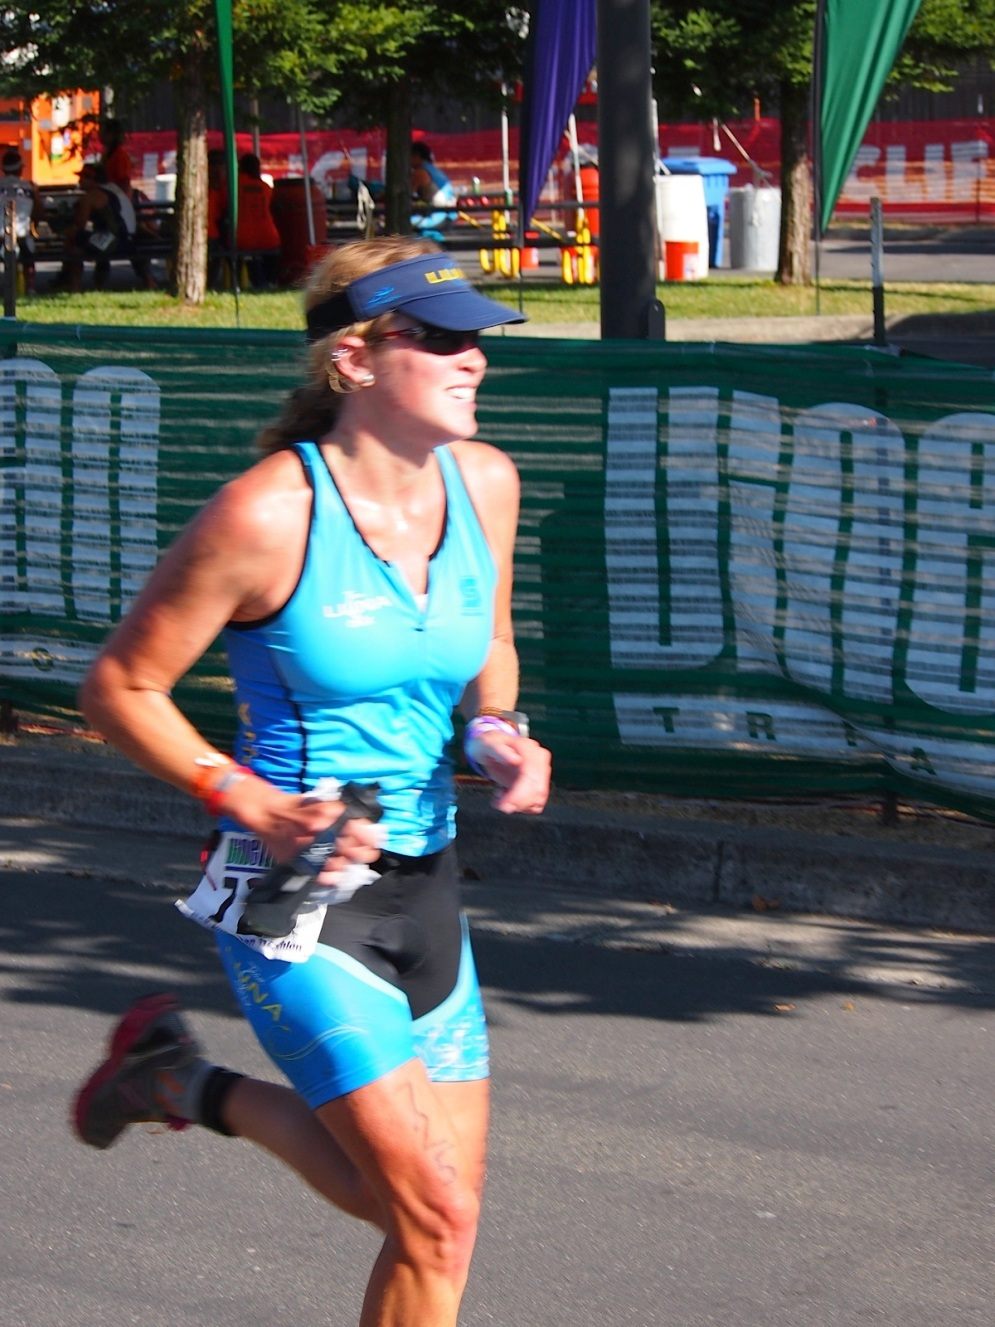 Throwback! Vineman 2012 - 3rd place female and first sub-11 Ironman!